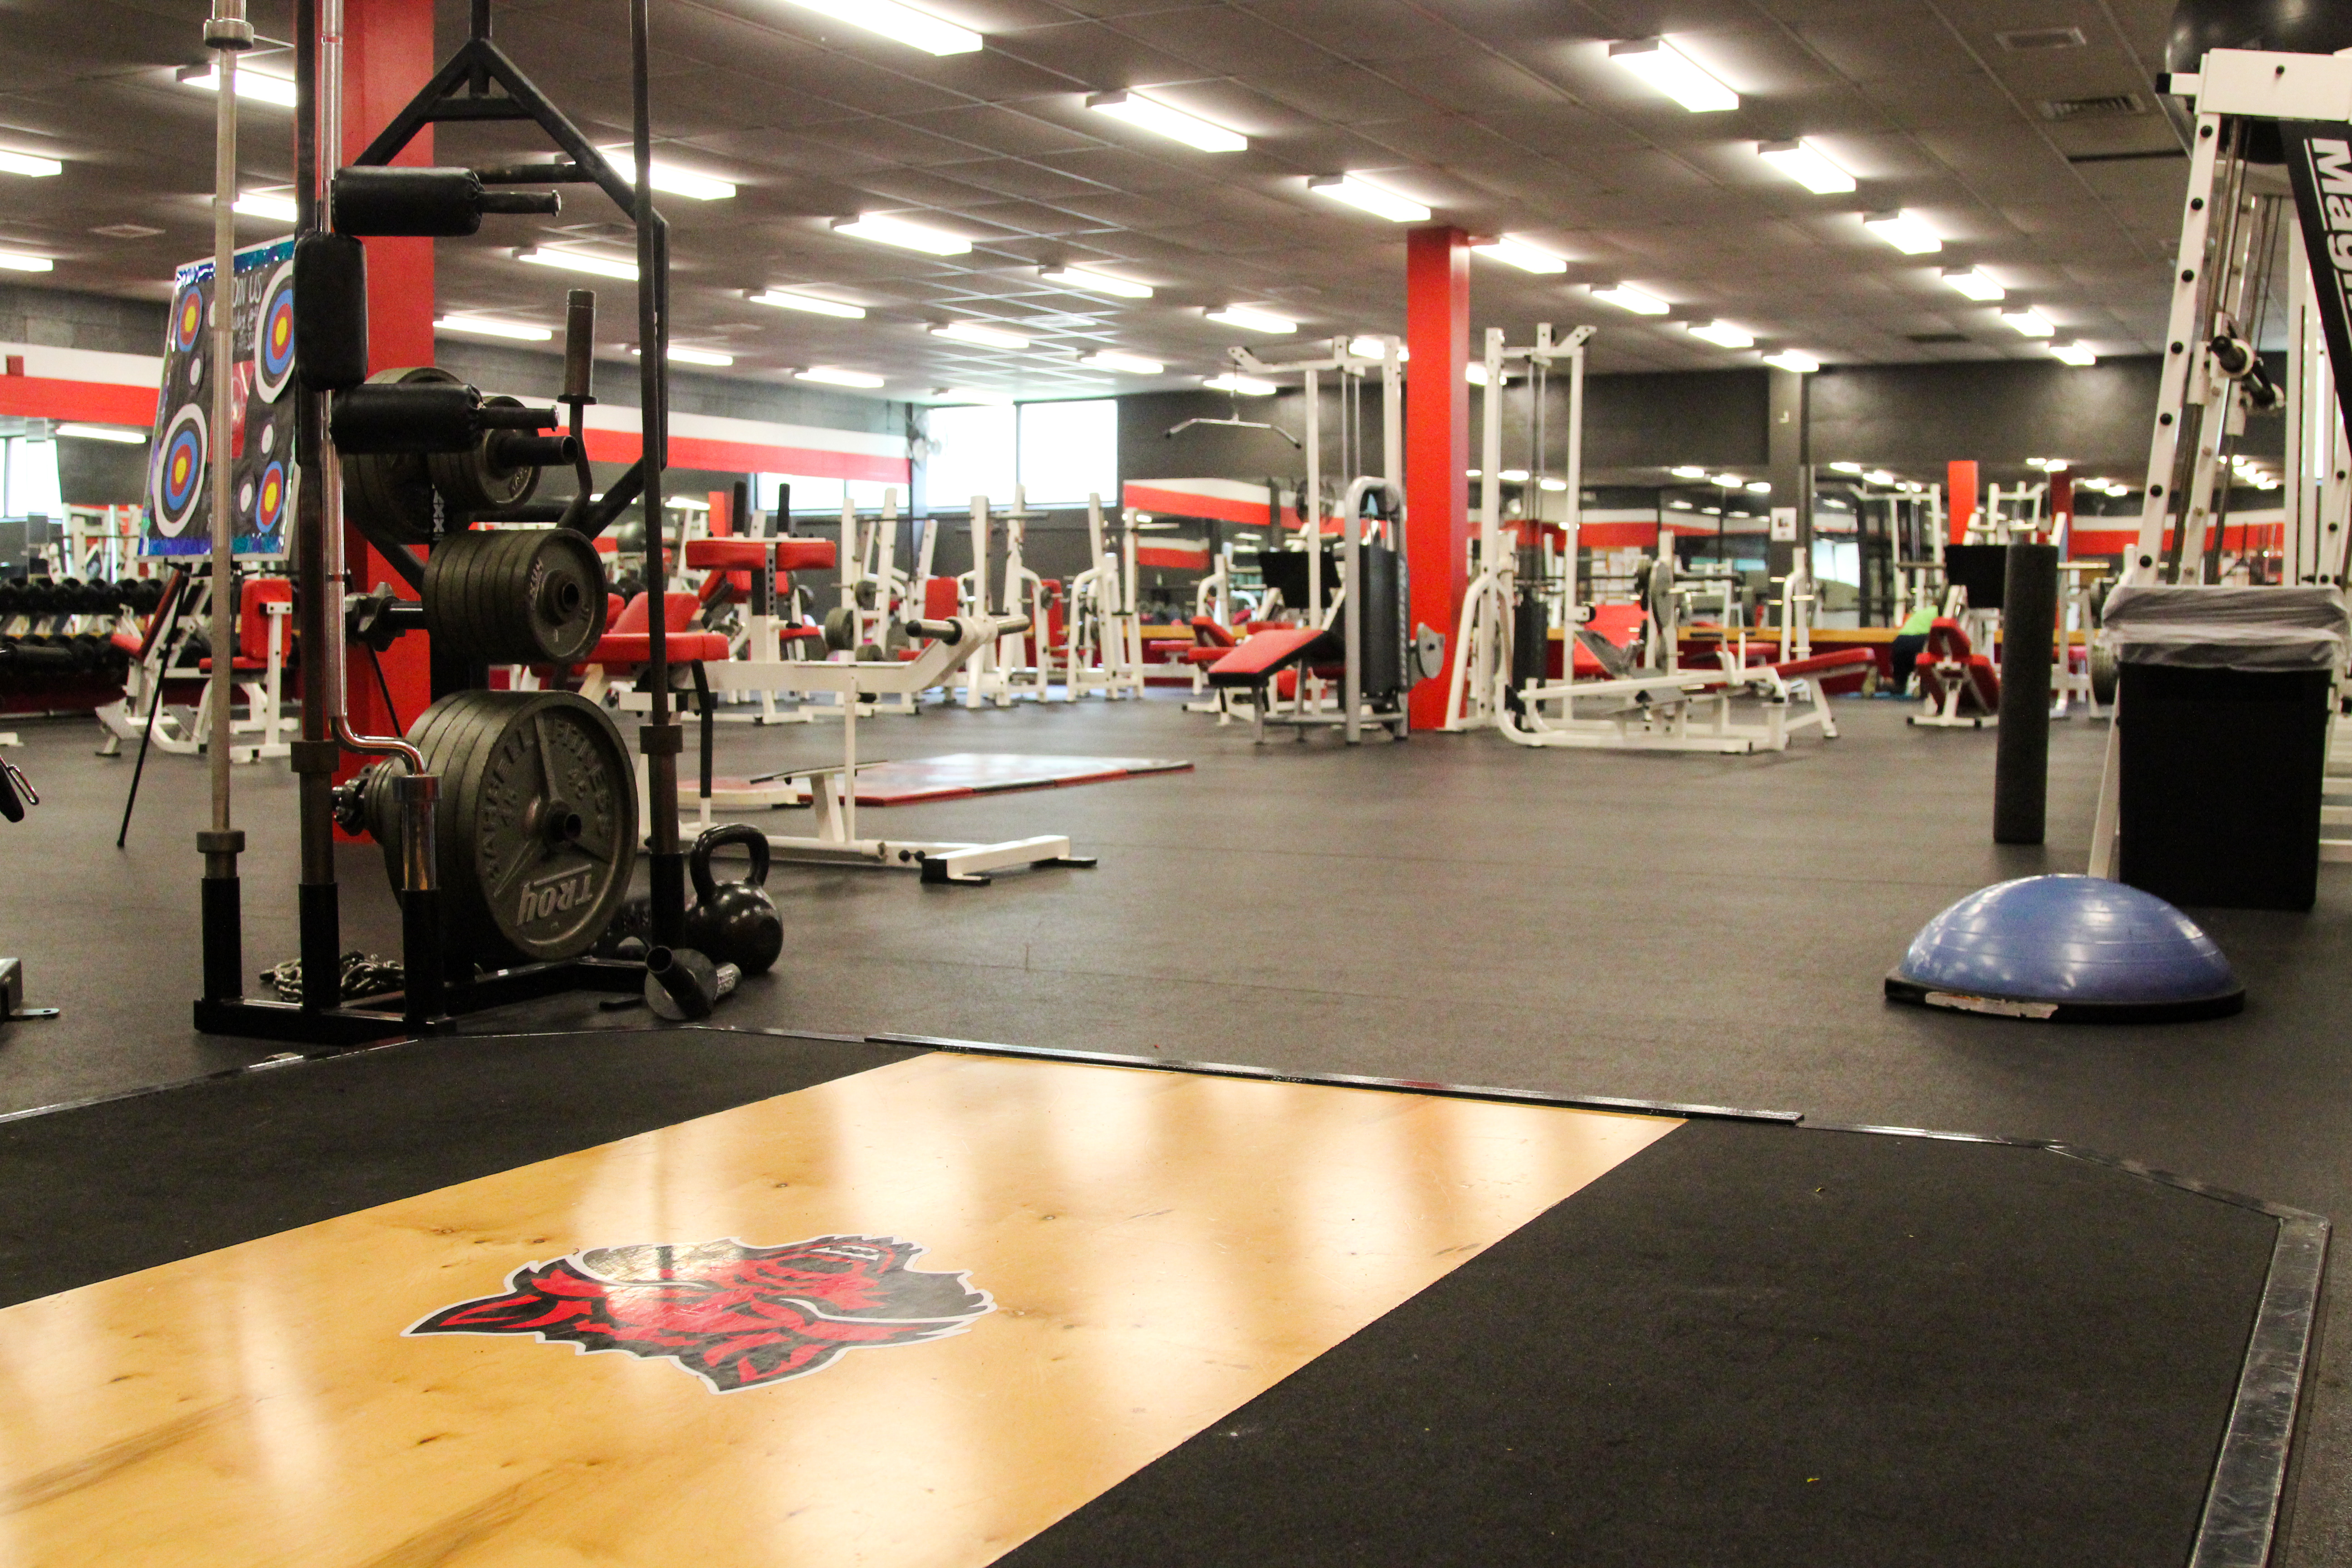 Picture of The Free Weight Room